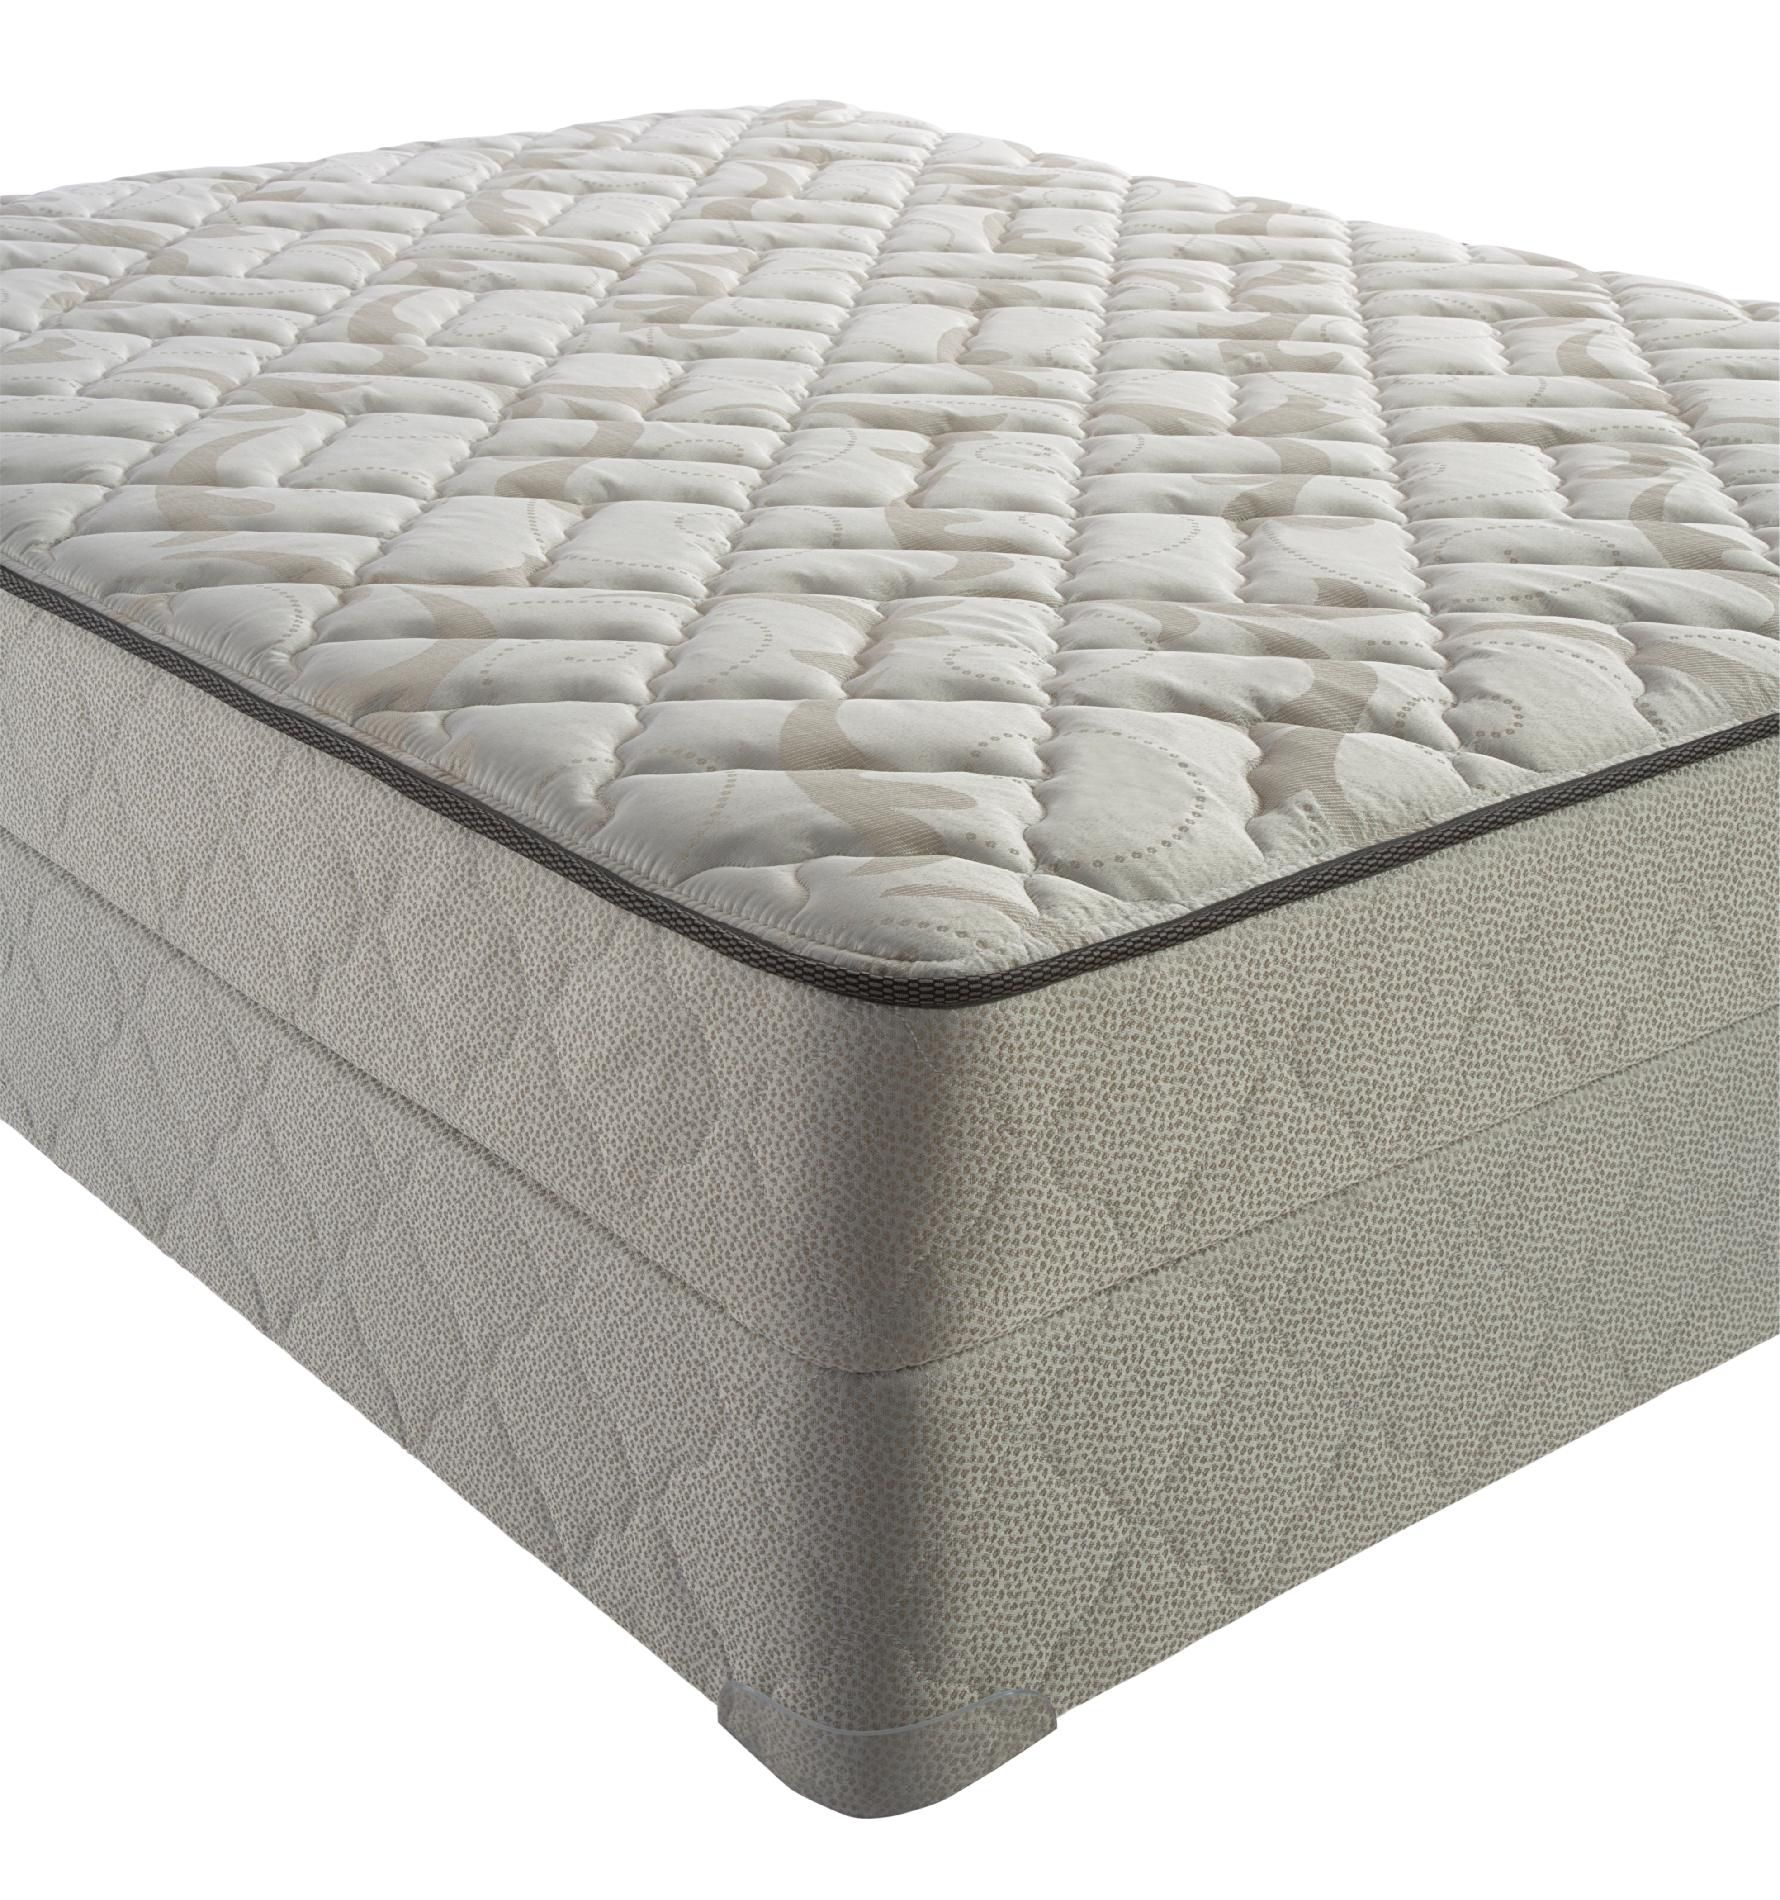 Madera-Select-II-Plush-Cal-King-Mattress-Only